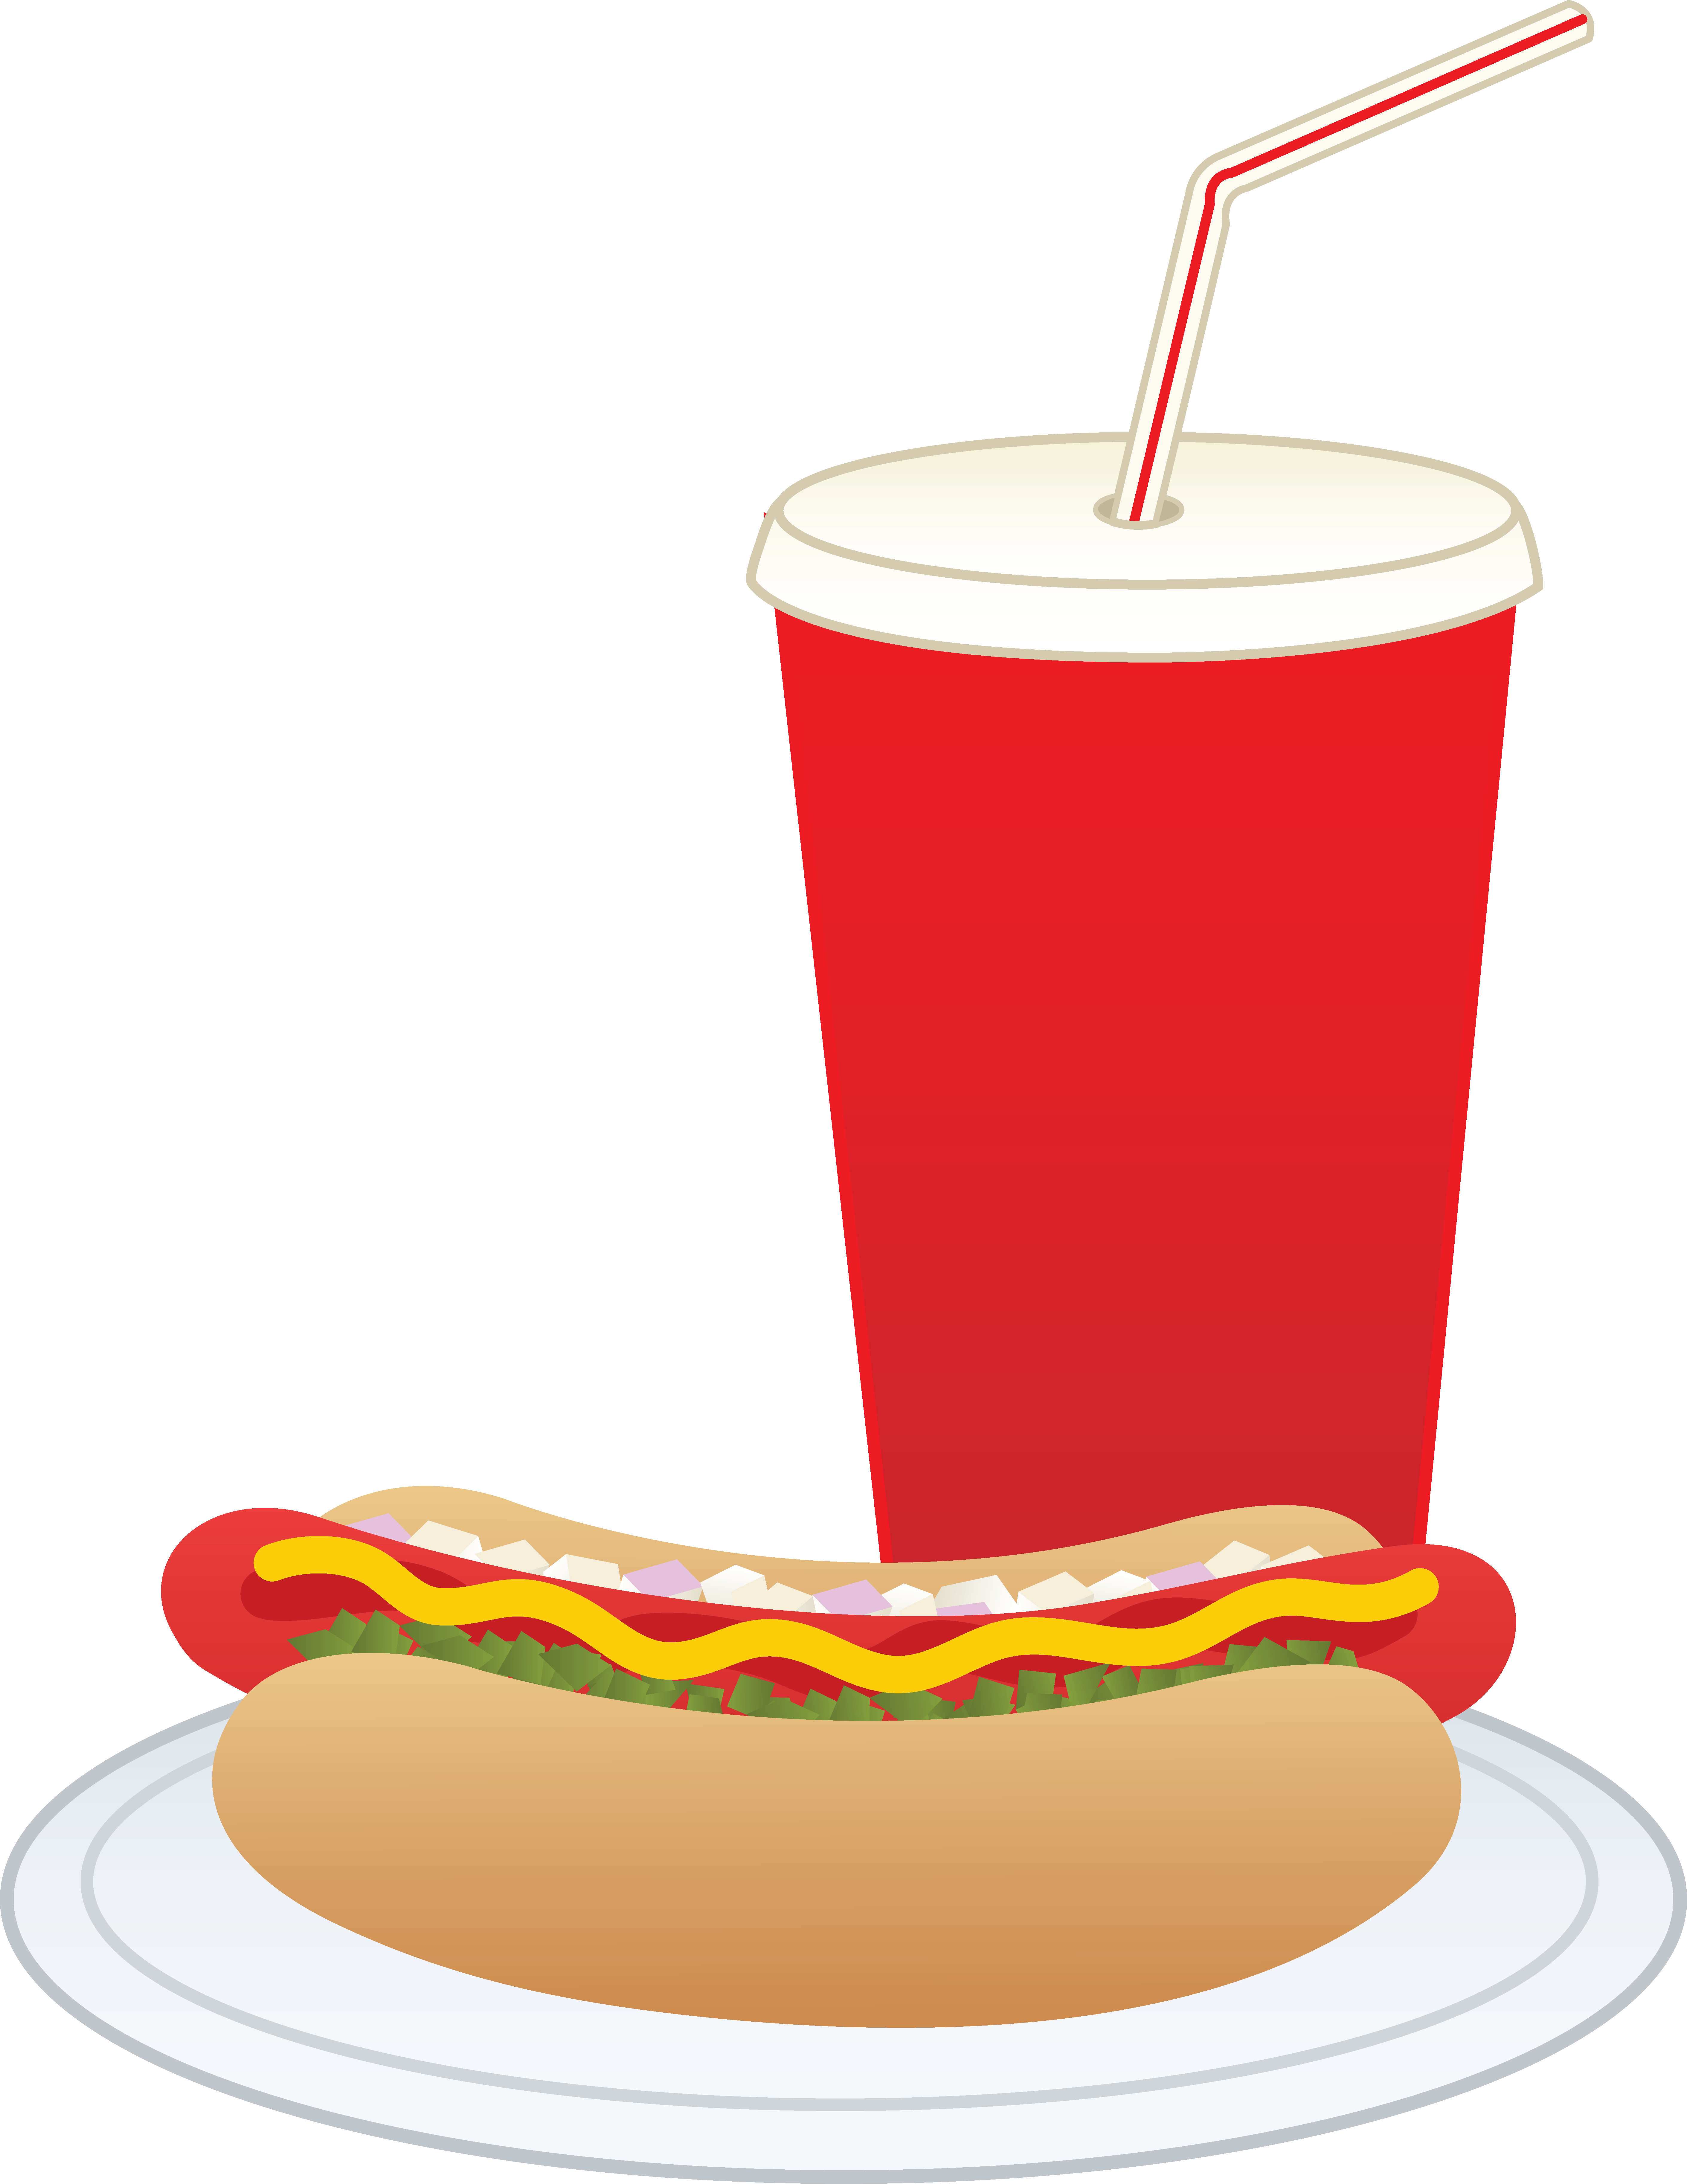 Free clipart food and drink clipart freeuse library Free No Food Or Drink Clipart, Download Free Clip Art, Free Clip Art ... clipart freeuse library